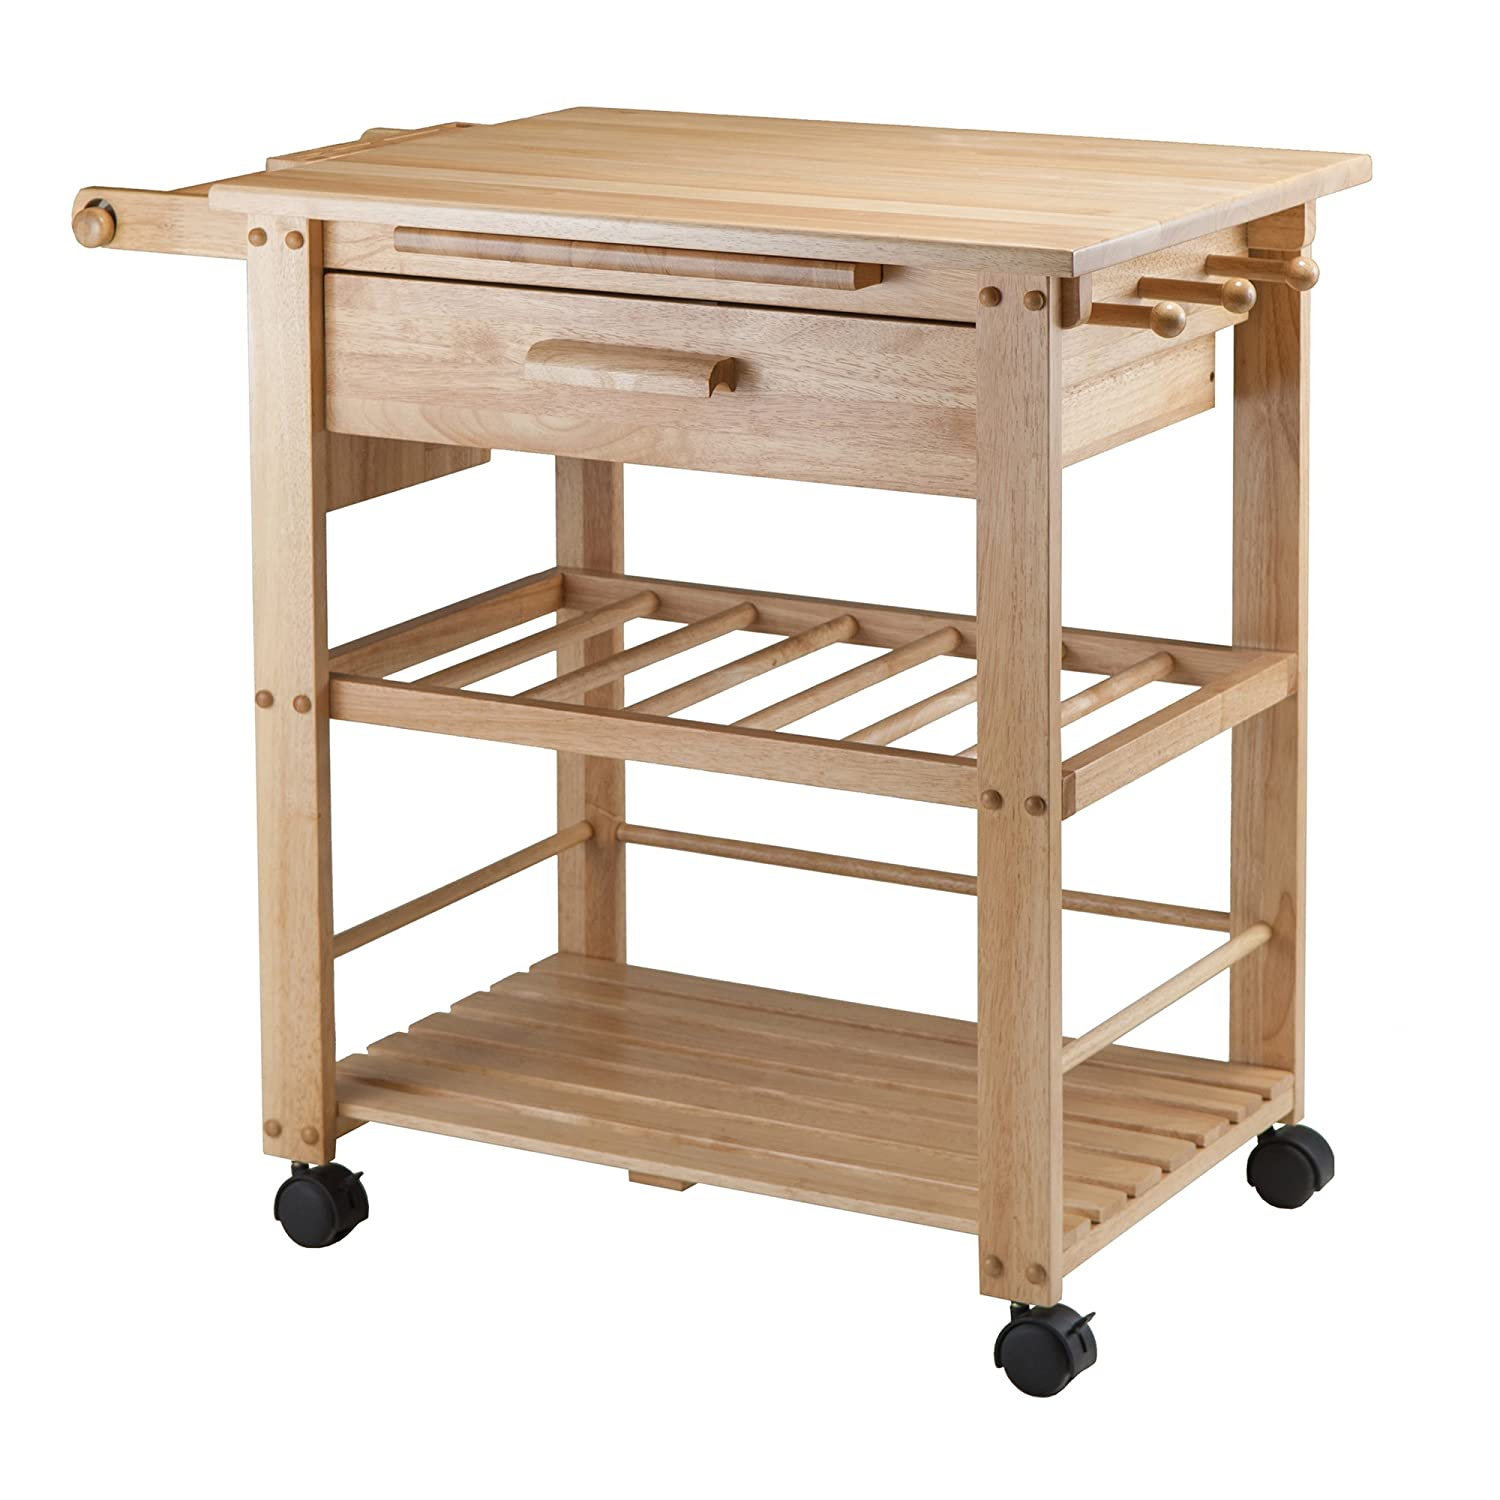 Amazon.com - Winsome Wood Finland Kitchen Cart - Kitchen Islands & Carts